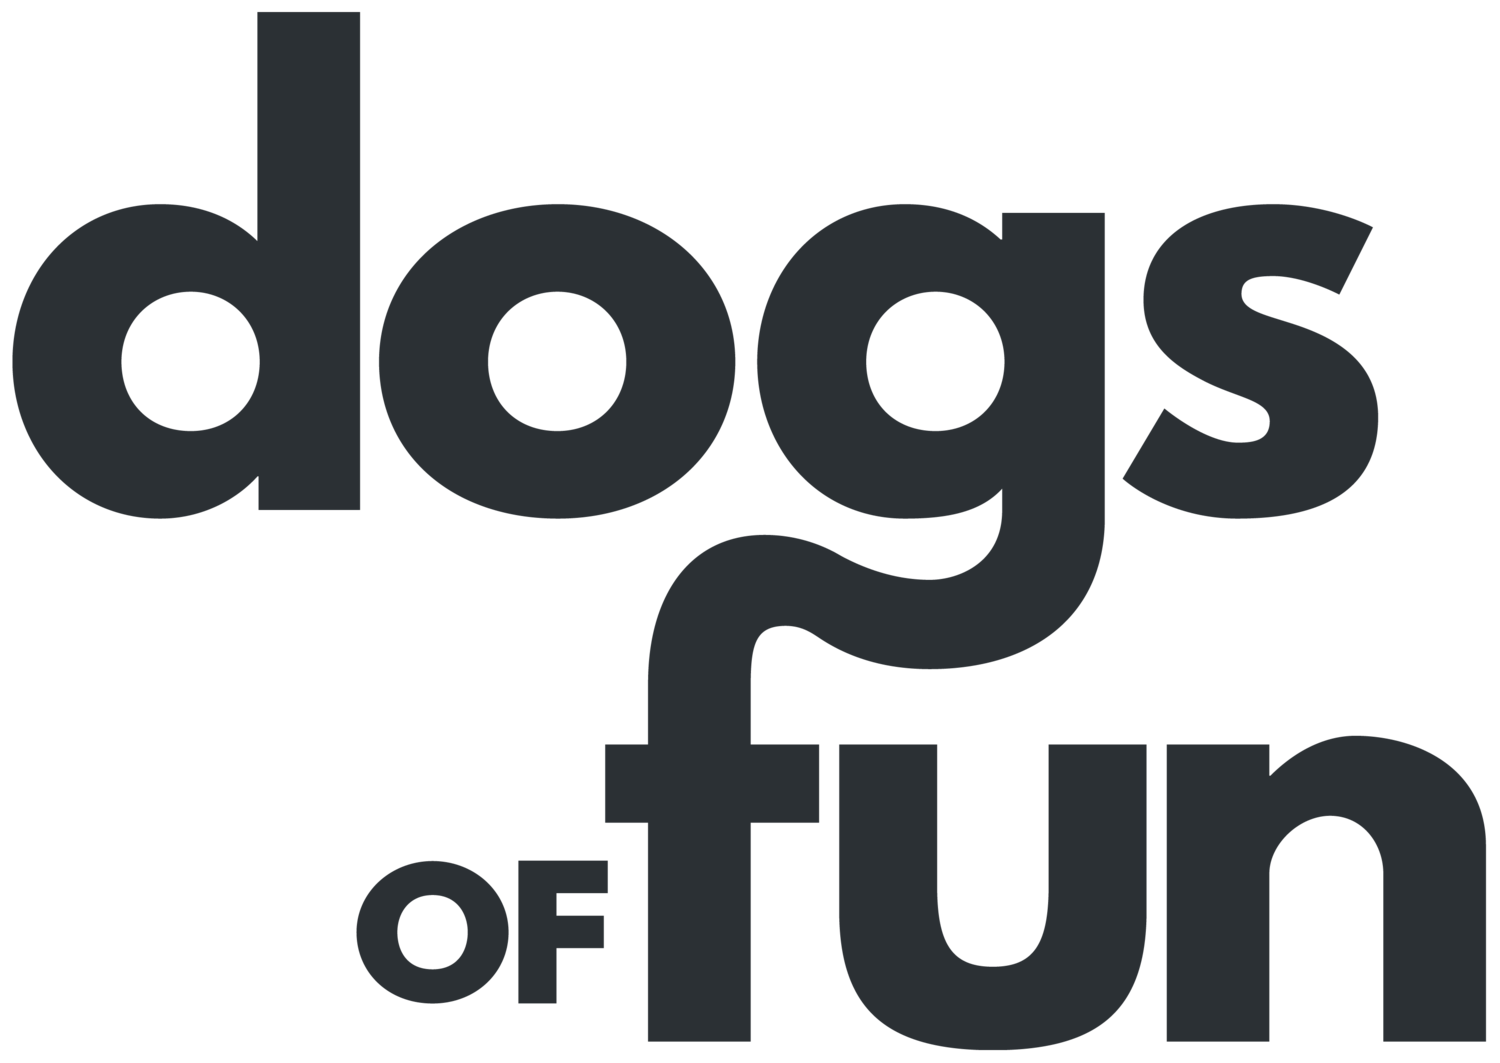 Dogs of Fun